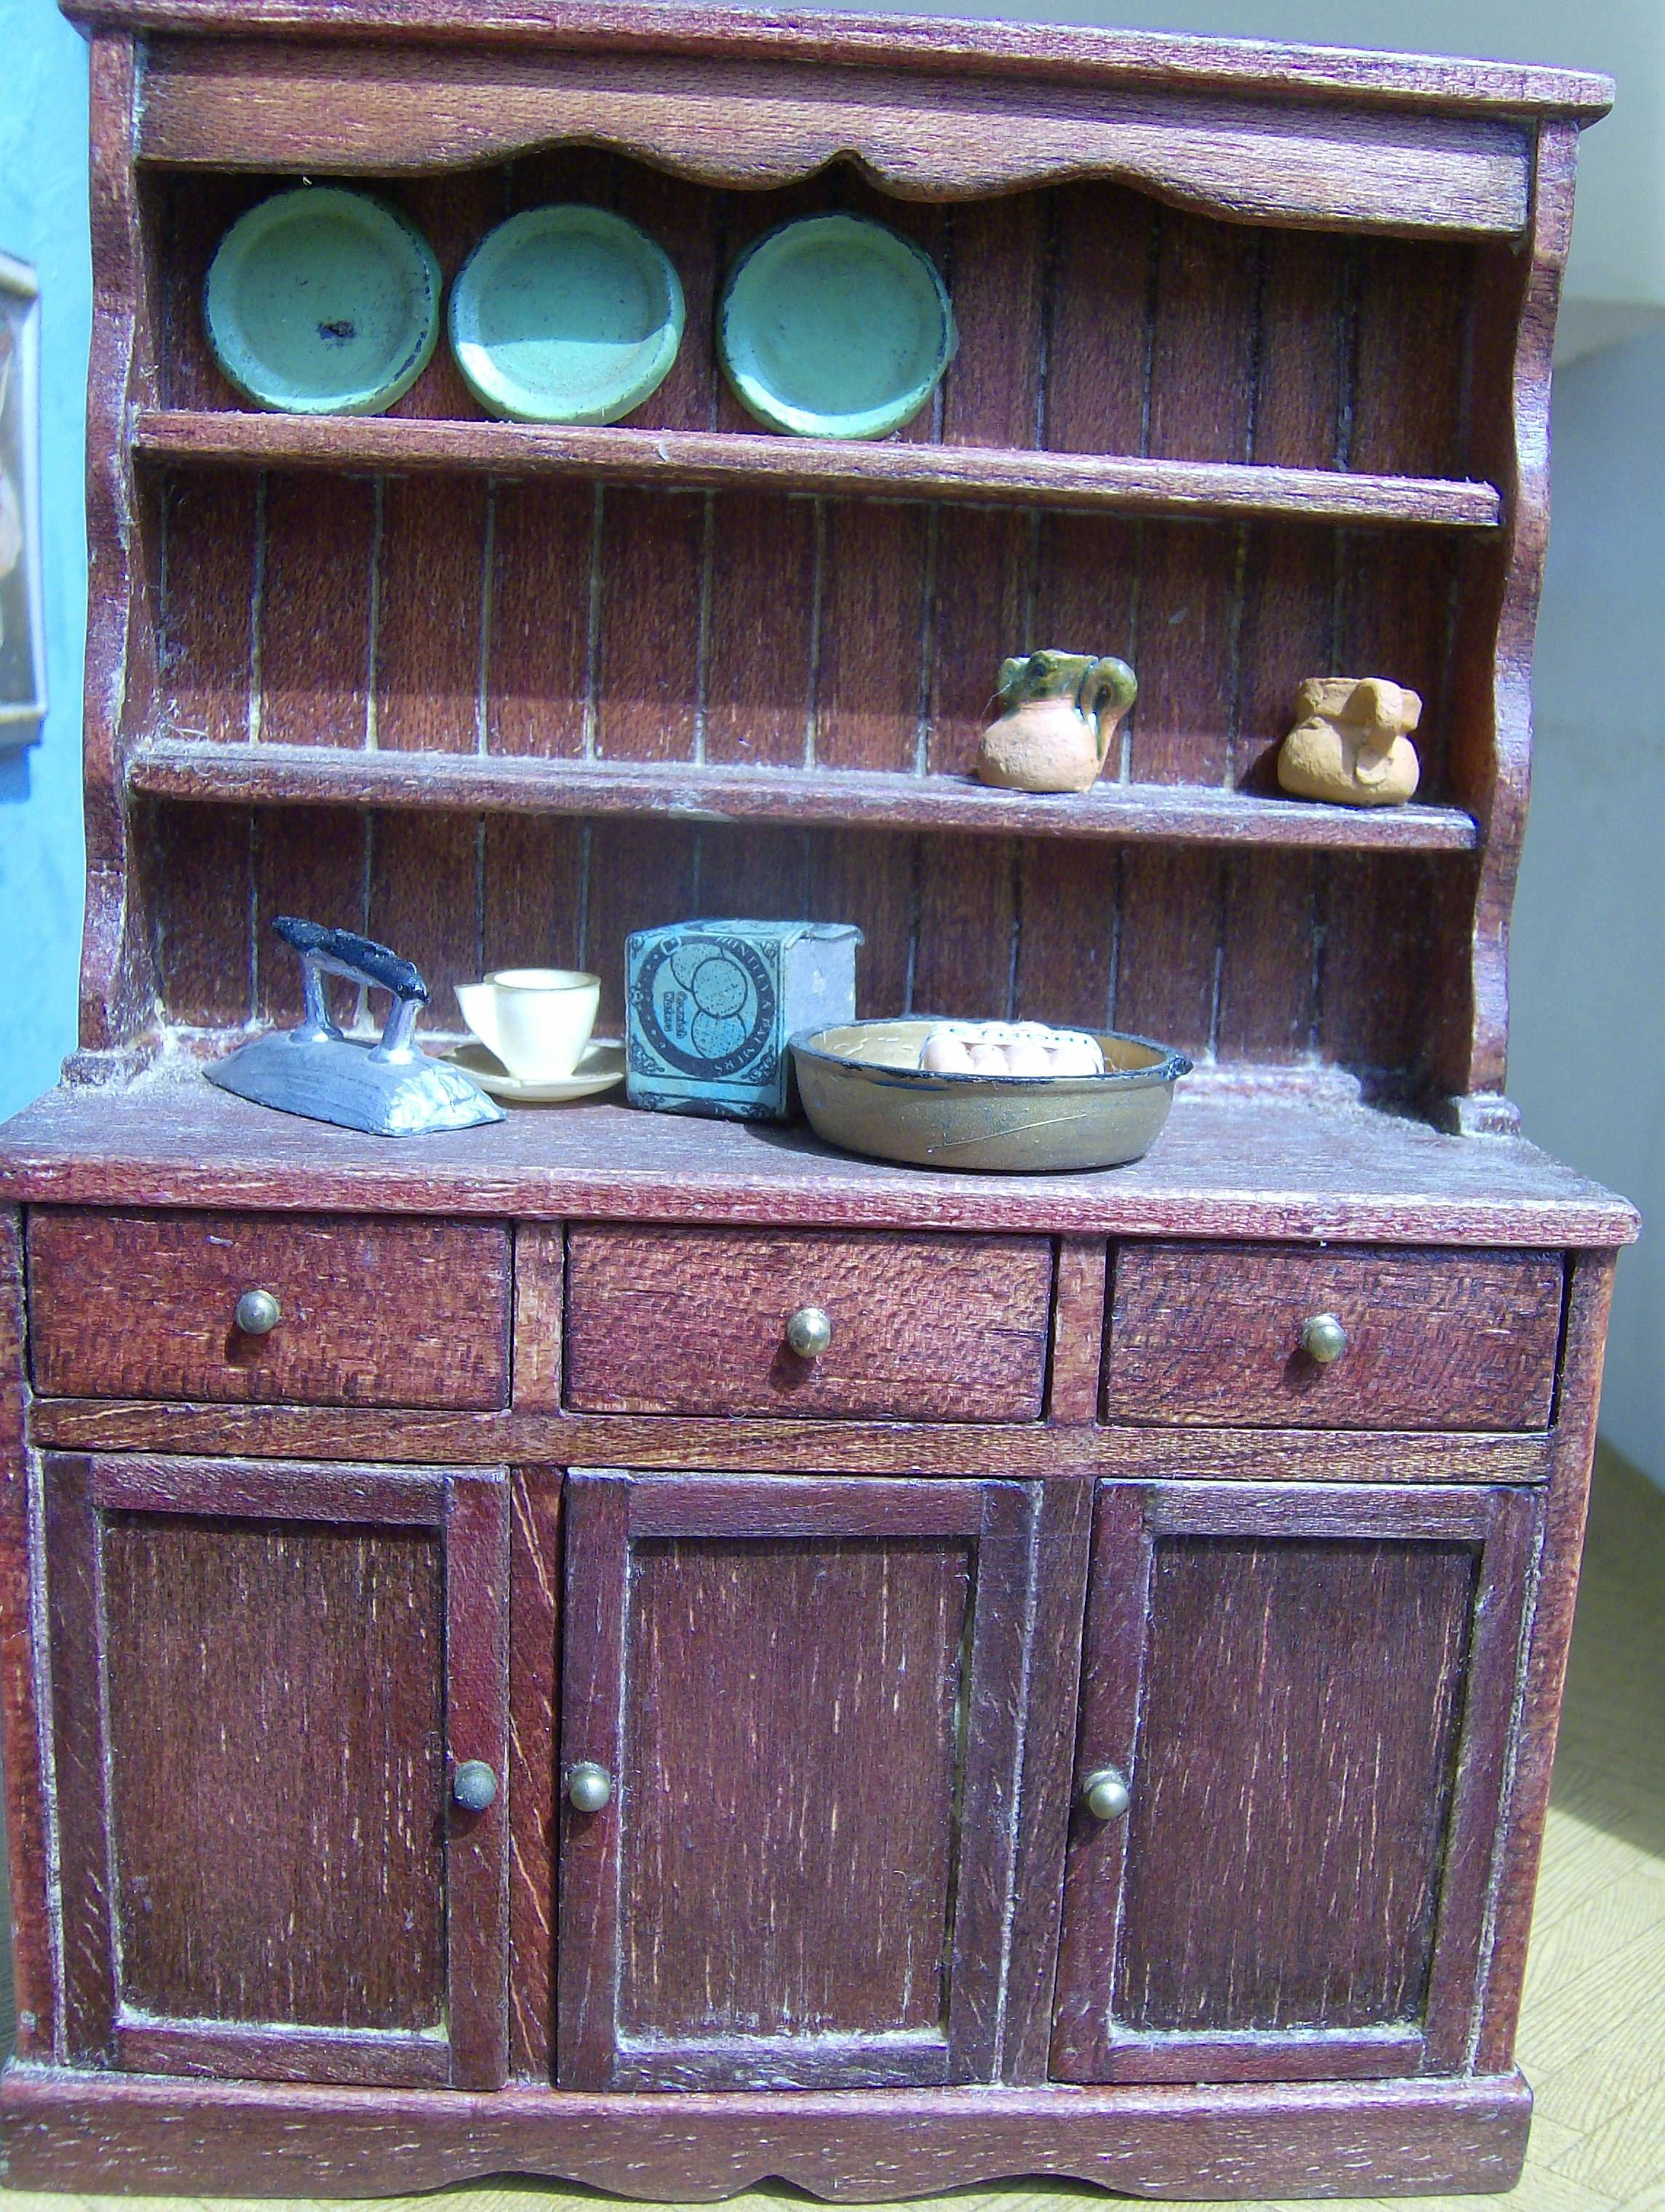 The 1/16th J.N. dresser that Cedric observed in the kitchen.